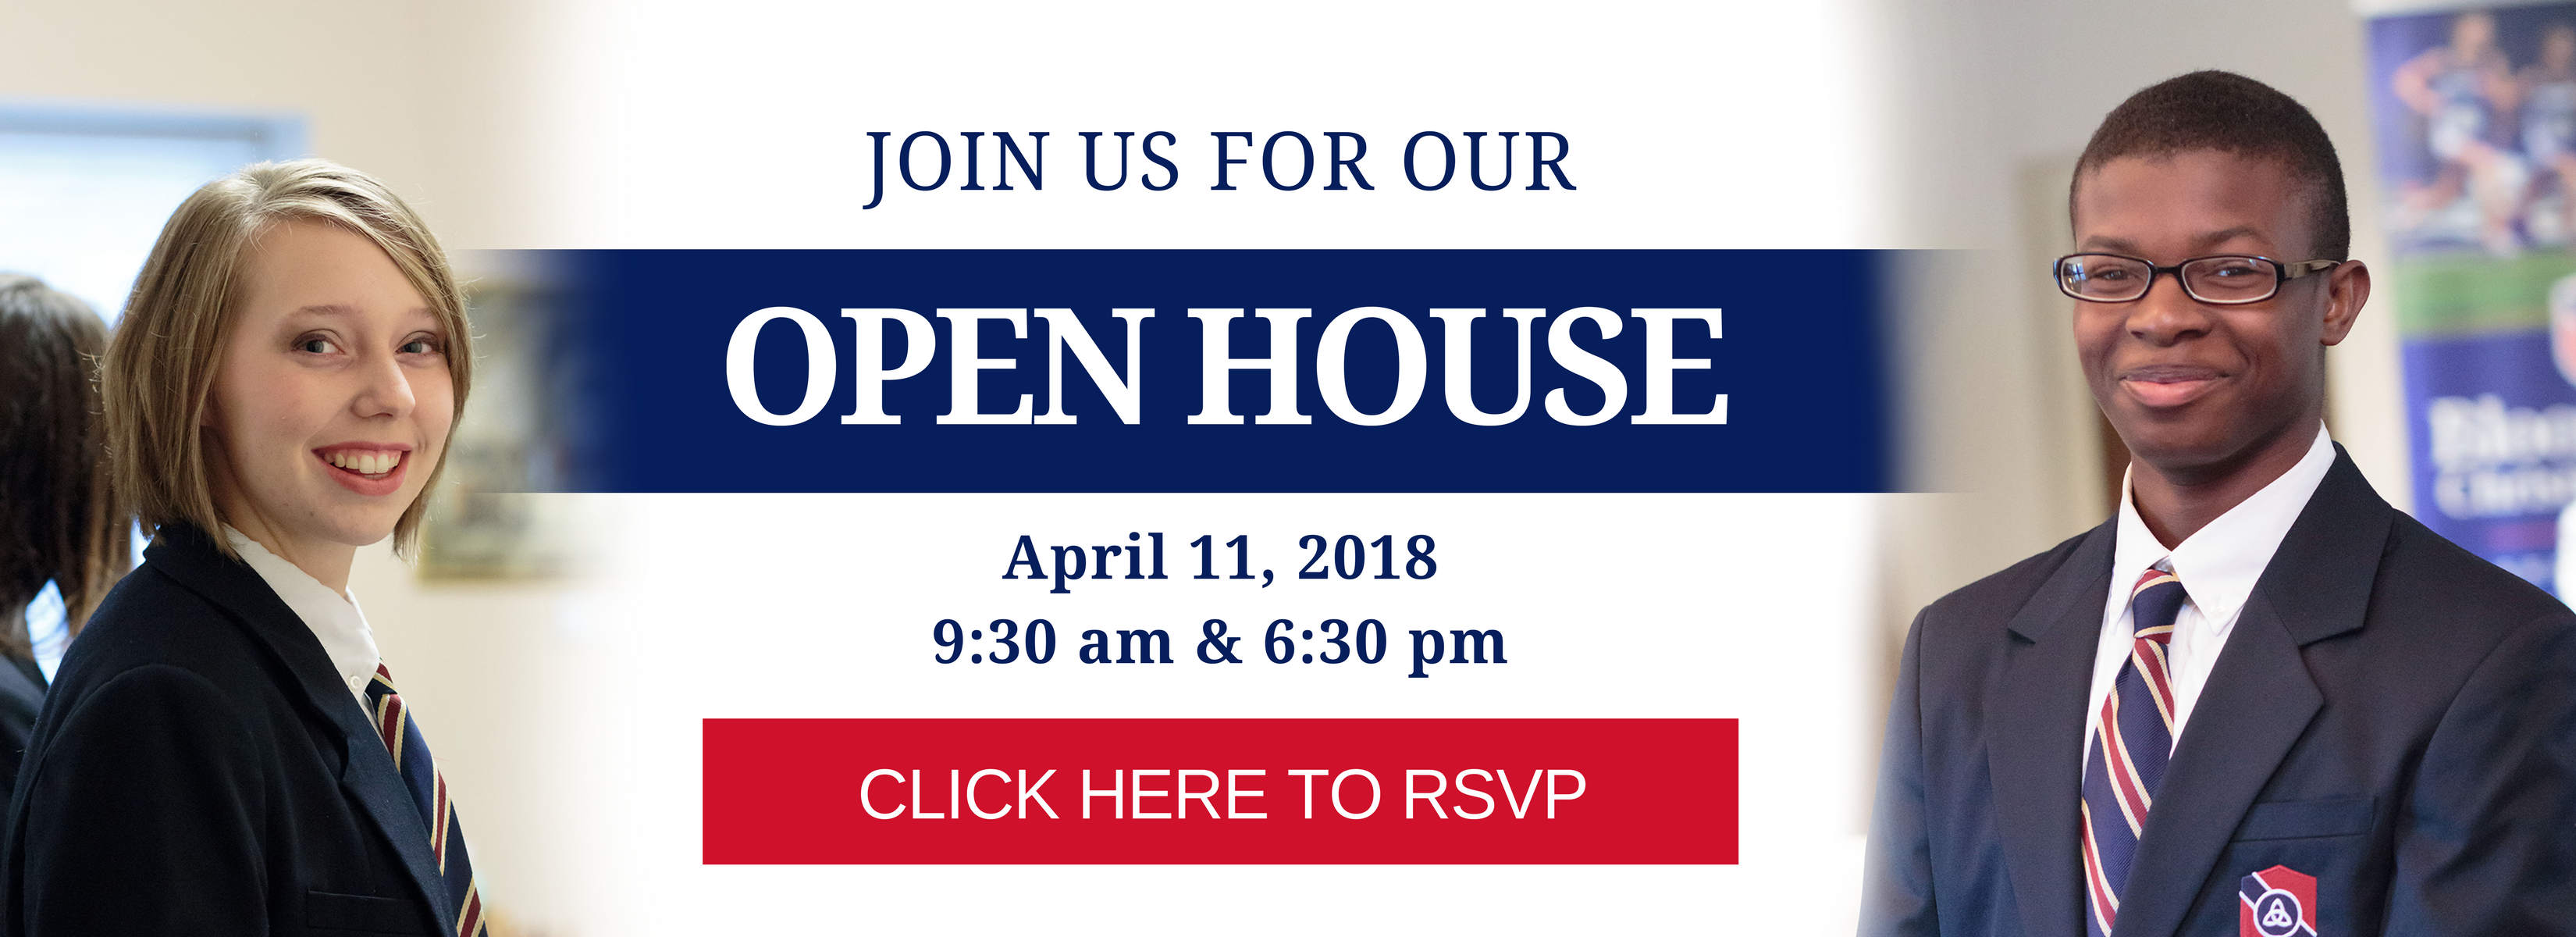 Click Here to RSVP for our Open House